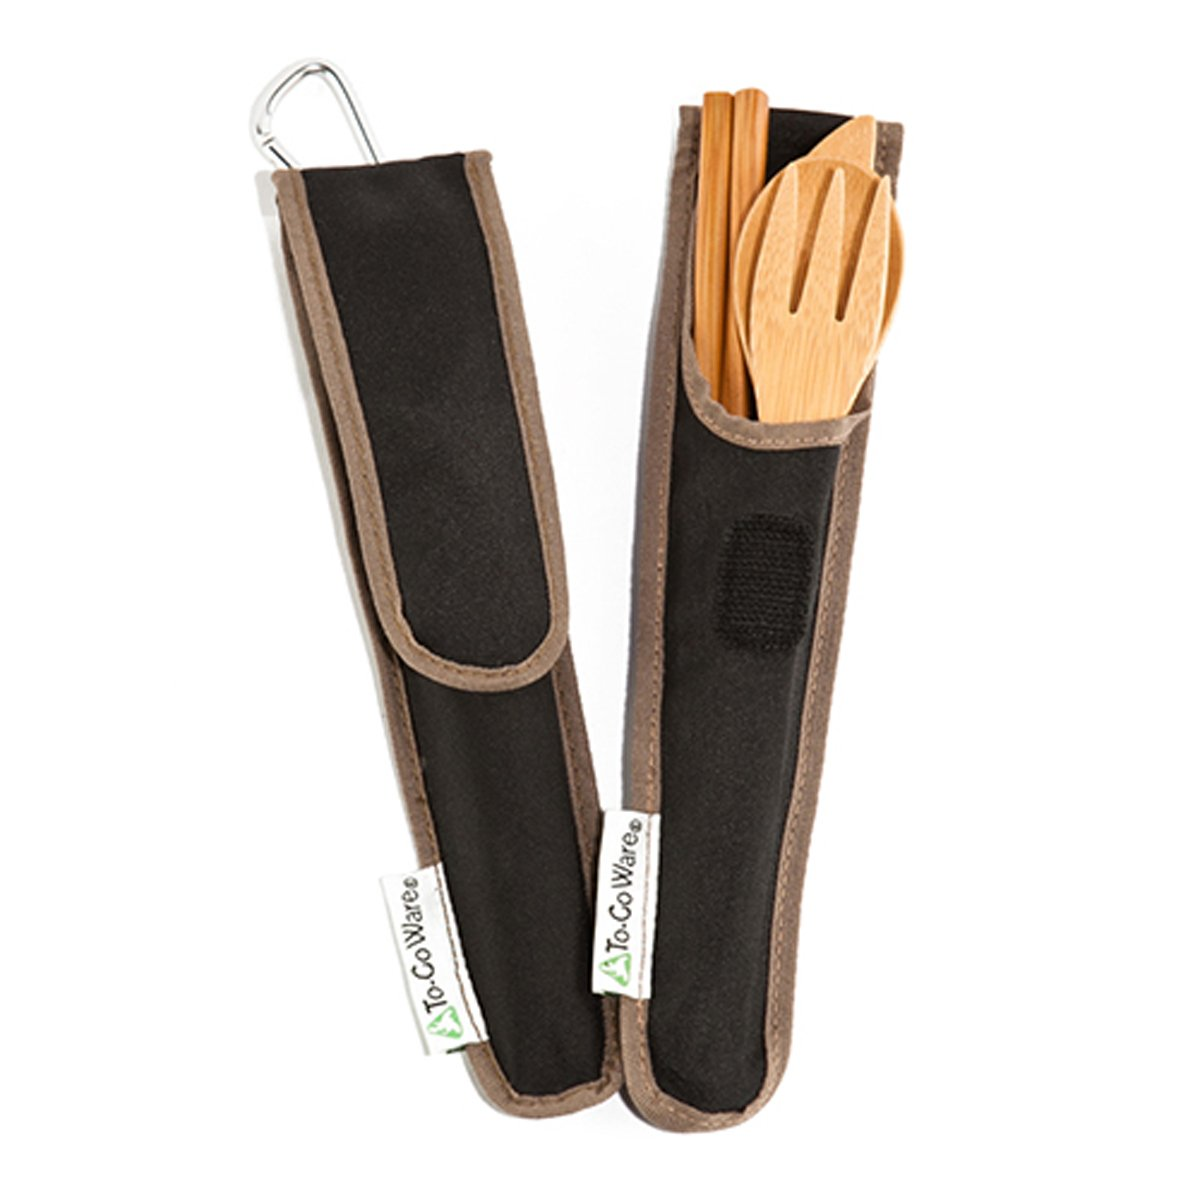 To-Go Ware Bamboo Travel Utensils - Utensil Set with Carrying Case, Hijiki